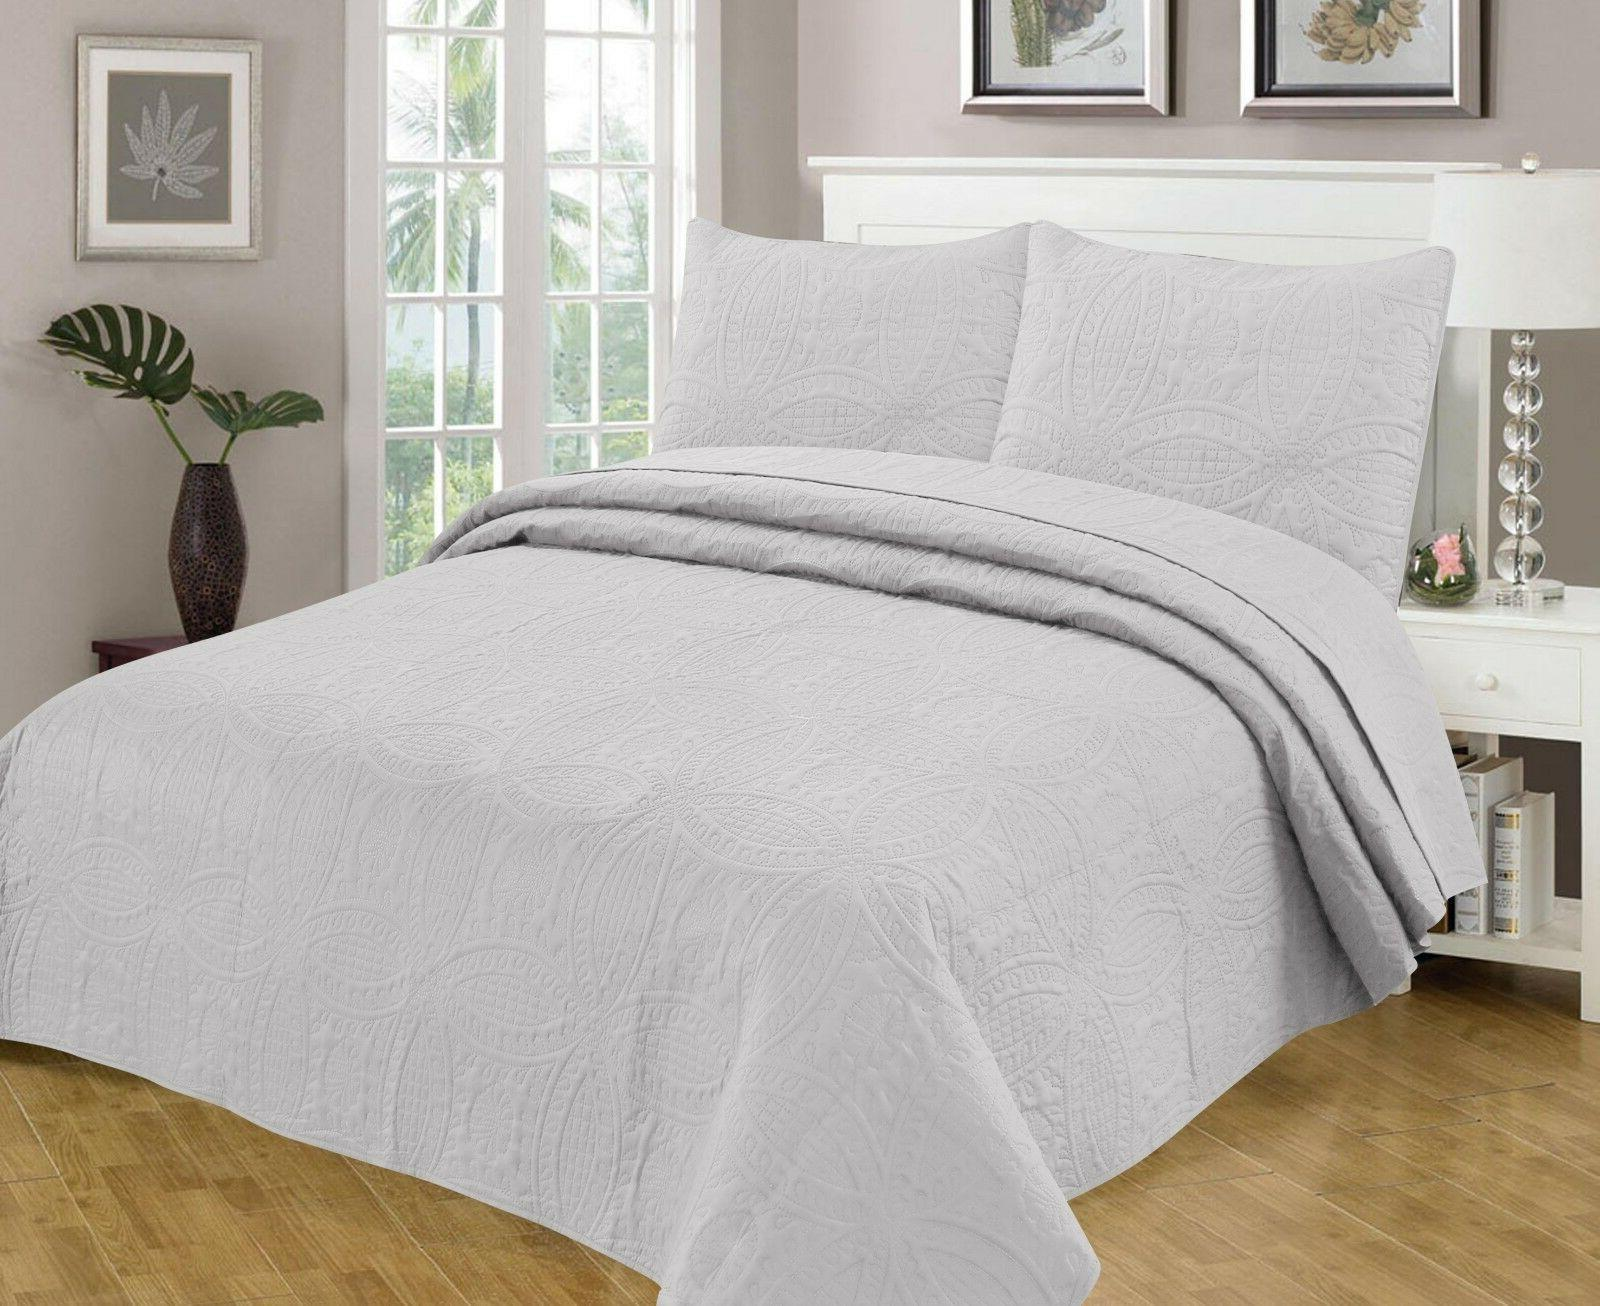 Bedspread Coverlet 3 Pcs Set Oversize Queen or King Size 8 C